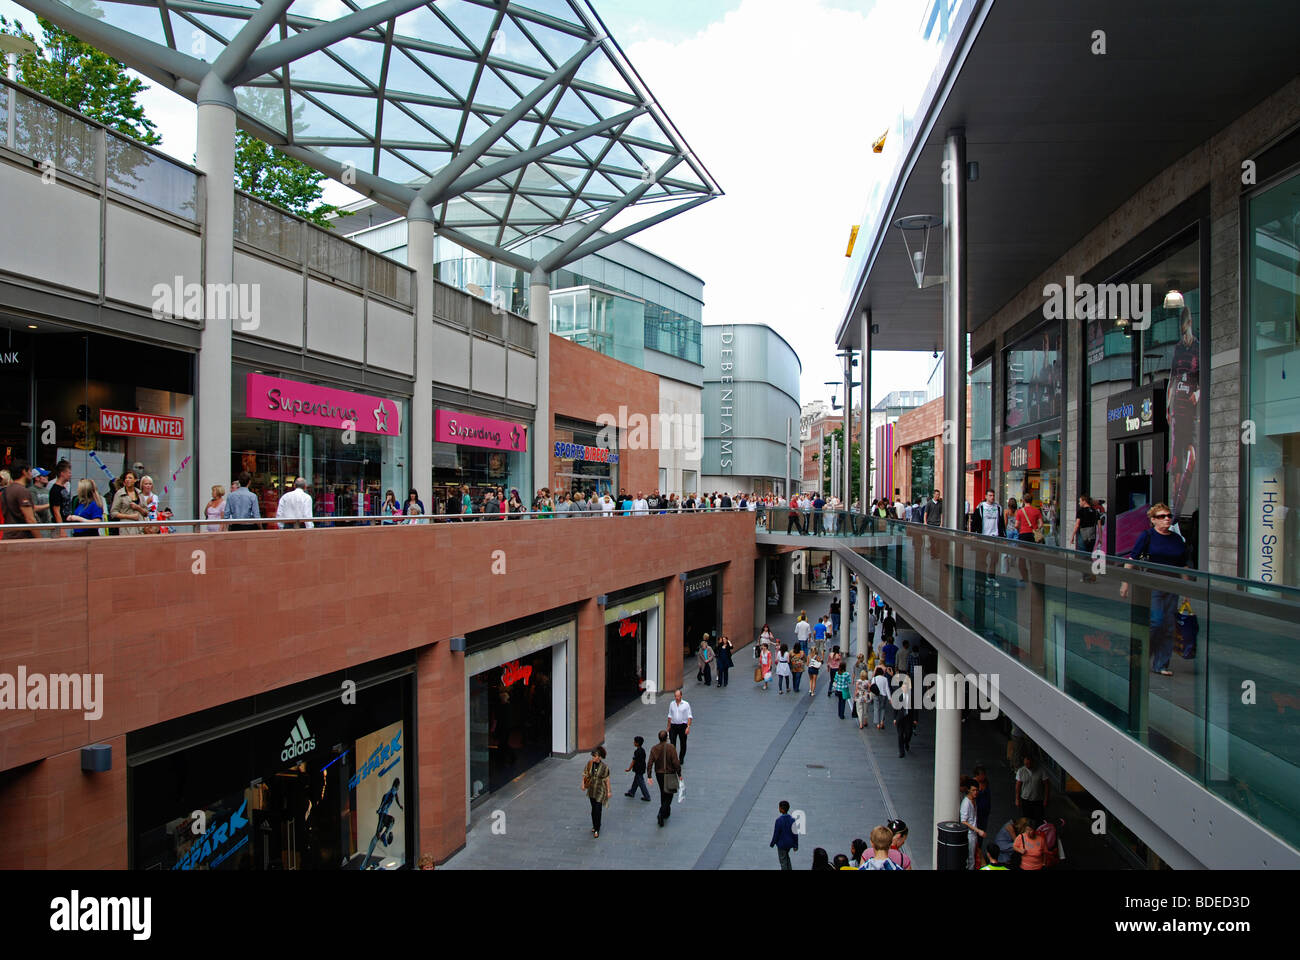 ' Liverpool One ' the shopping complex in liverpool, uk - Stock Image